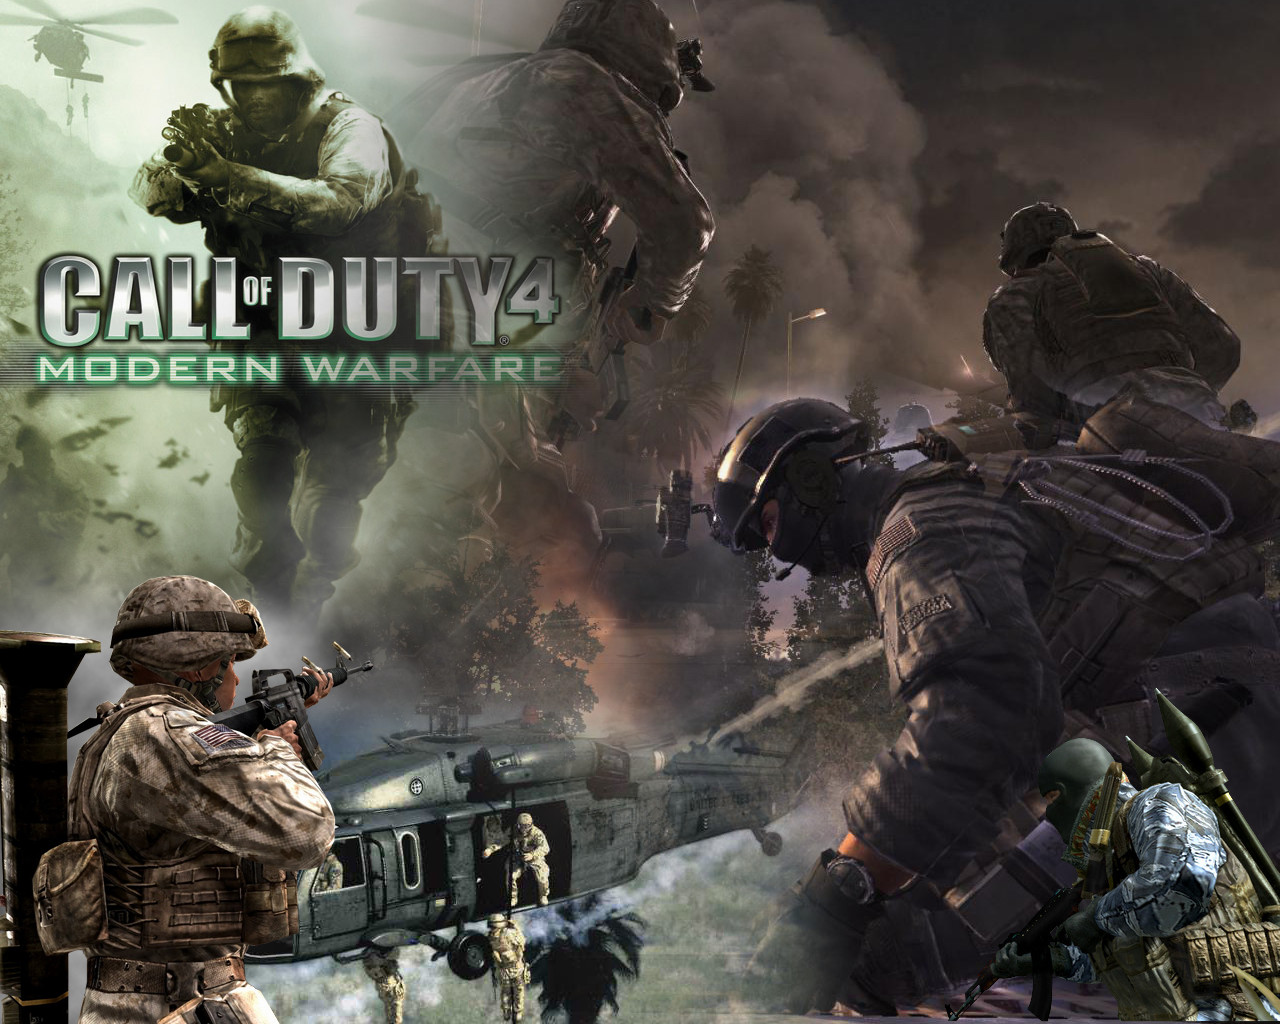 http://4.bp.blogspot.com/-hWGB213arEQ/UJG5x81fKxI/AAAAAAAAAPE/iZ6DkwHZ_7M/s1600/call-of-duty-4-wallpaper-modern-warfare-screenshot-collage.jpg